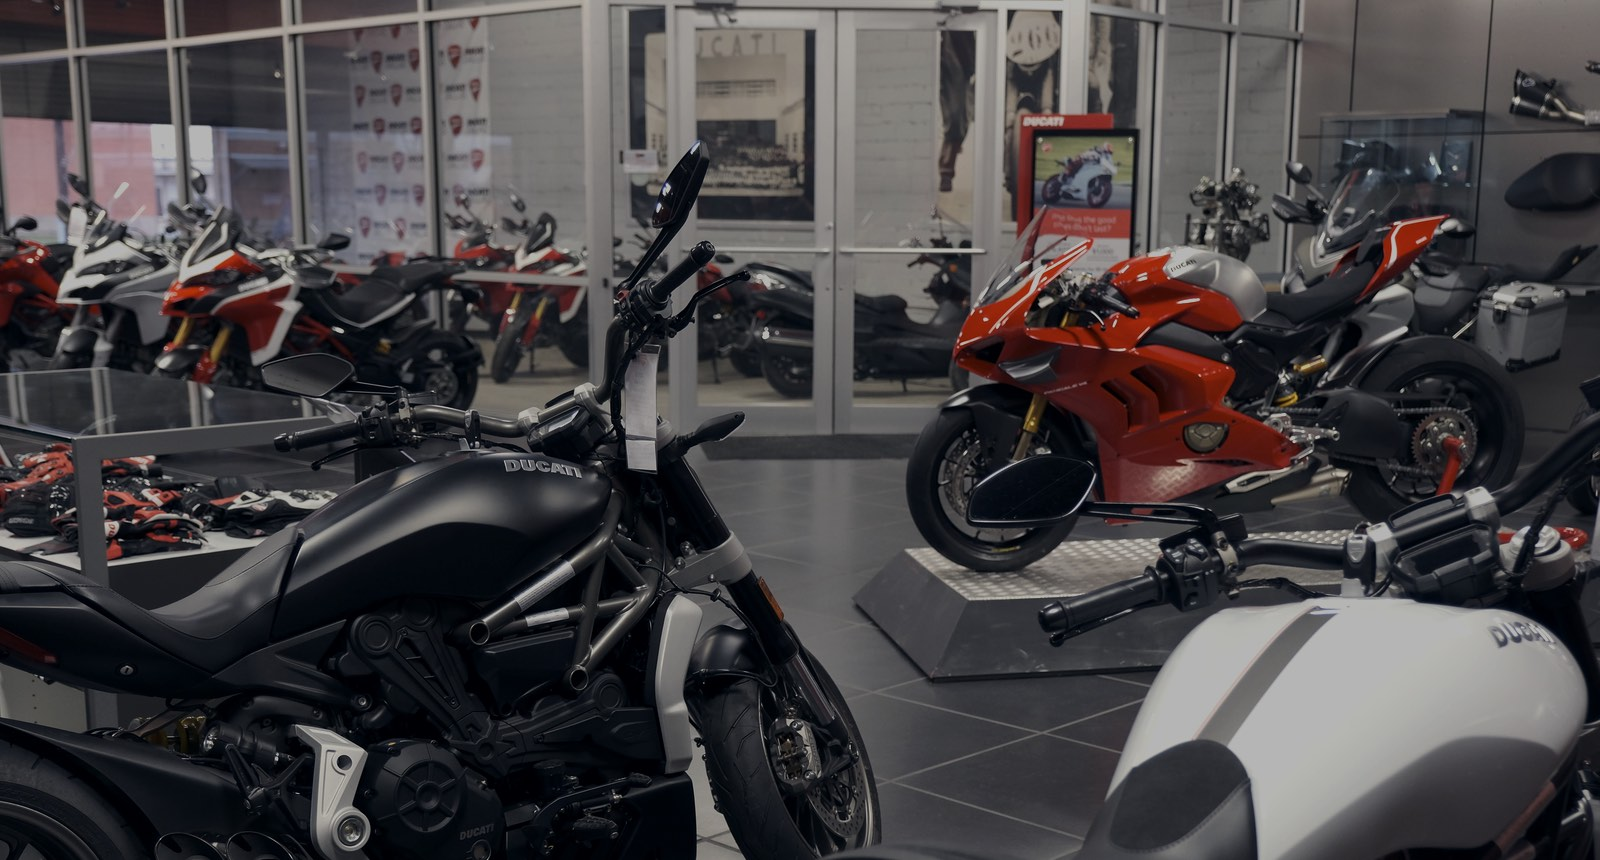 Ducati Oem Parts Accessories And Clothing Specialist Ams Ducati